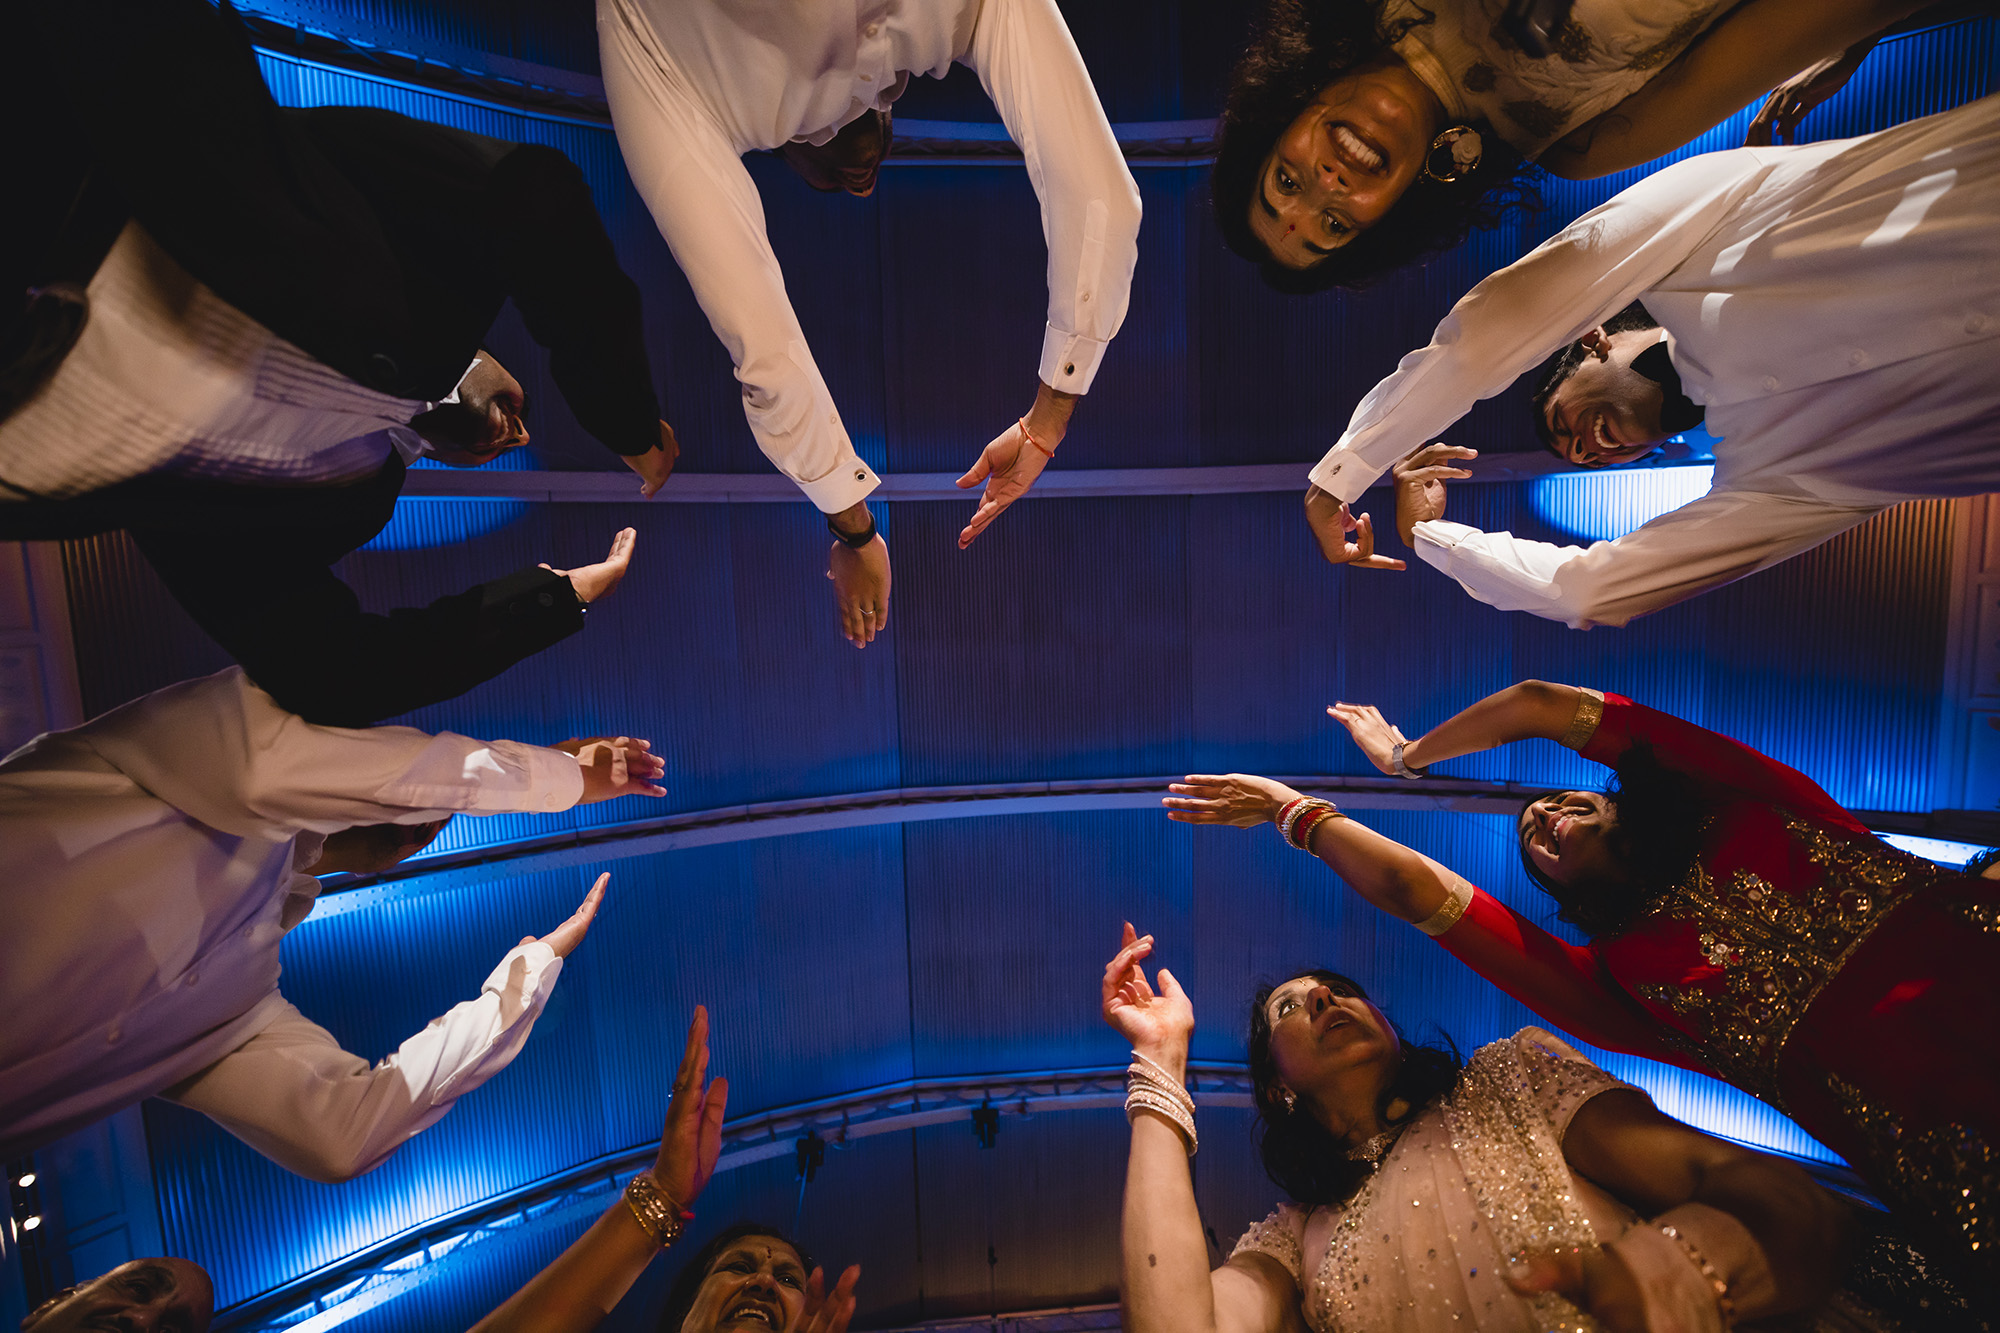 guests dancing over the camera looking up to the ceiling